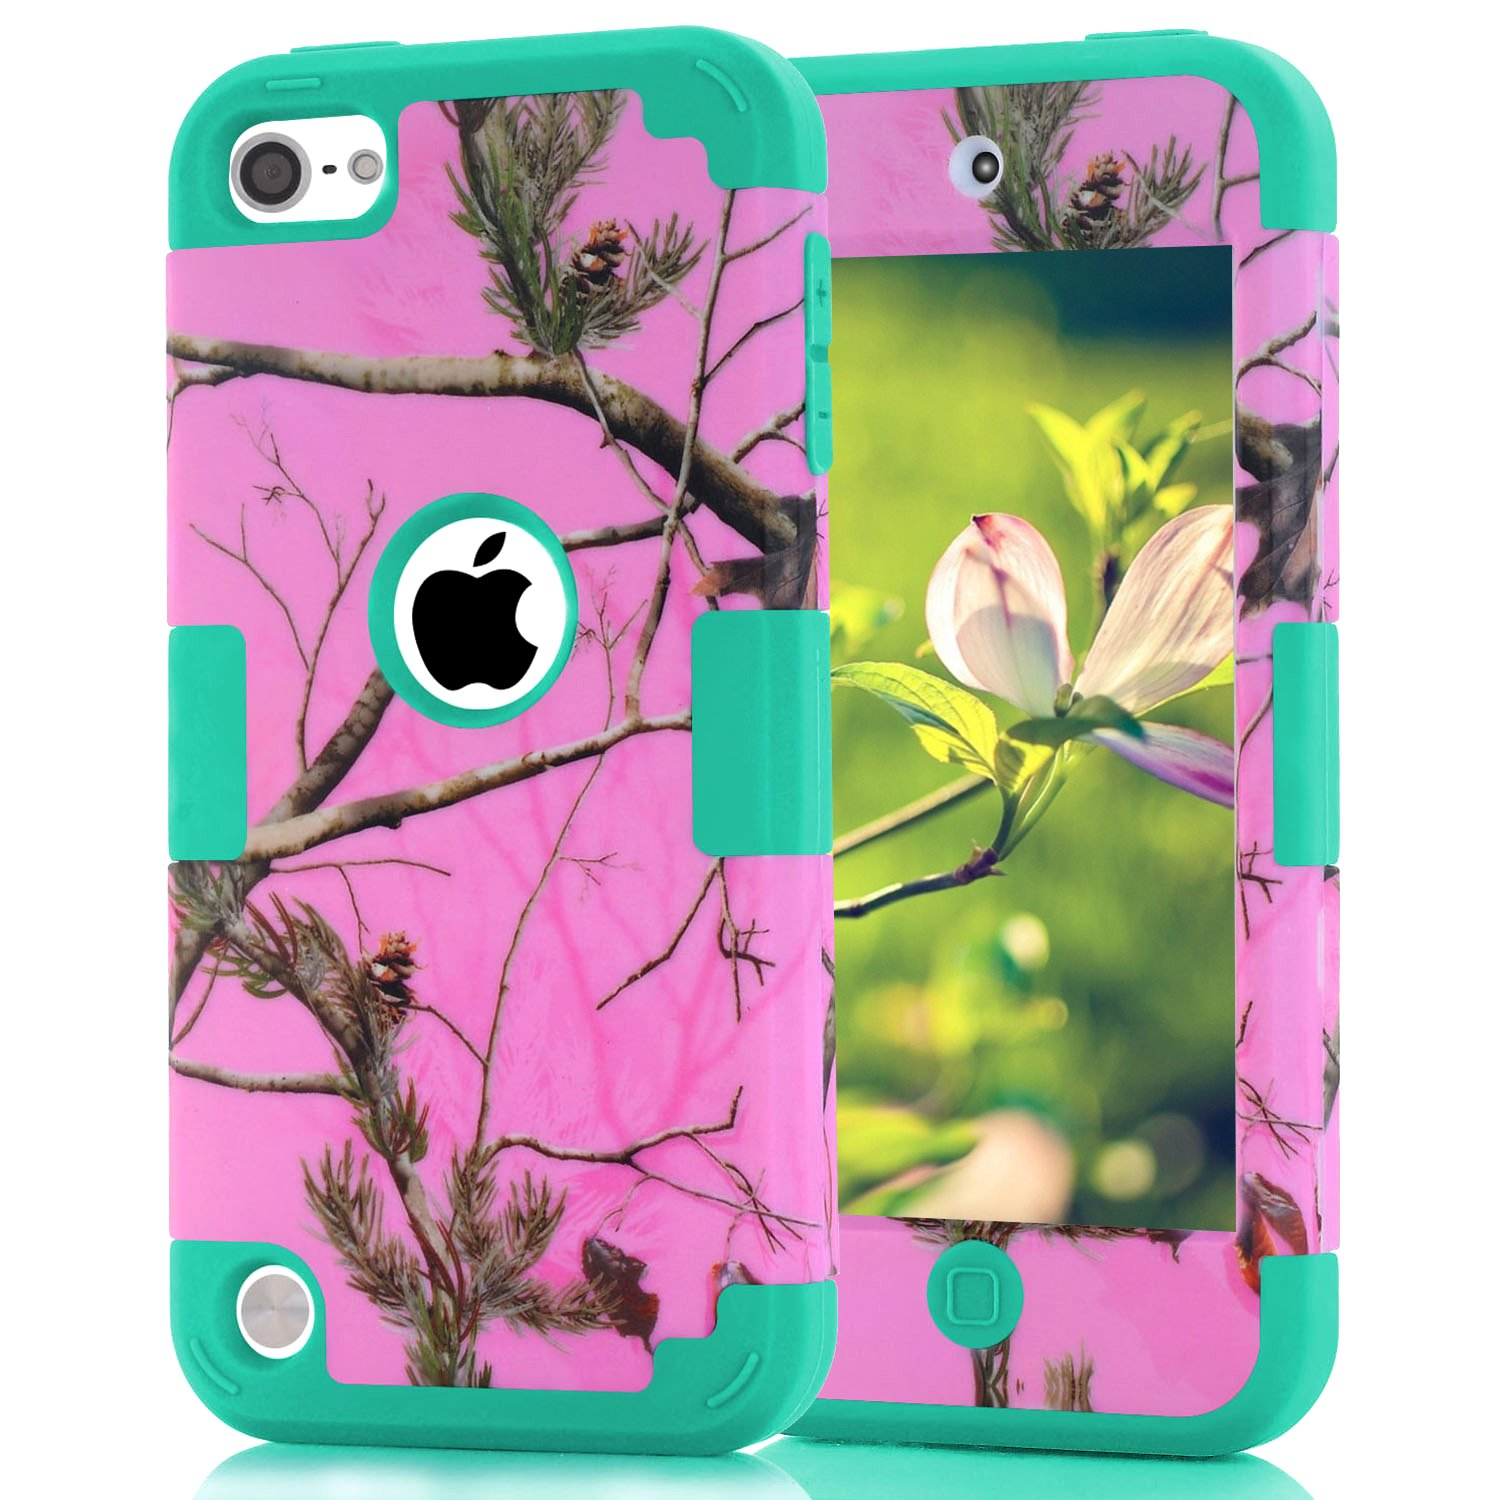 Funda para iPod Touch 5, 6, 7 (naturaleza - rosa)